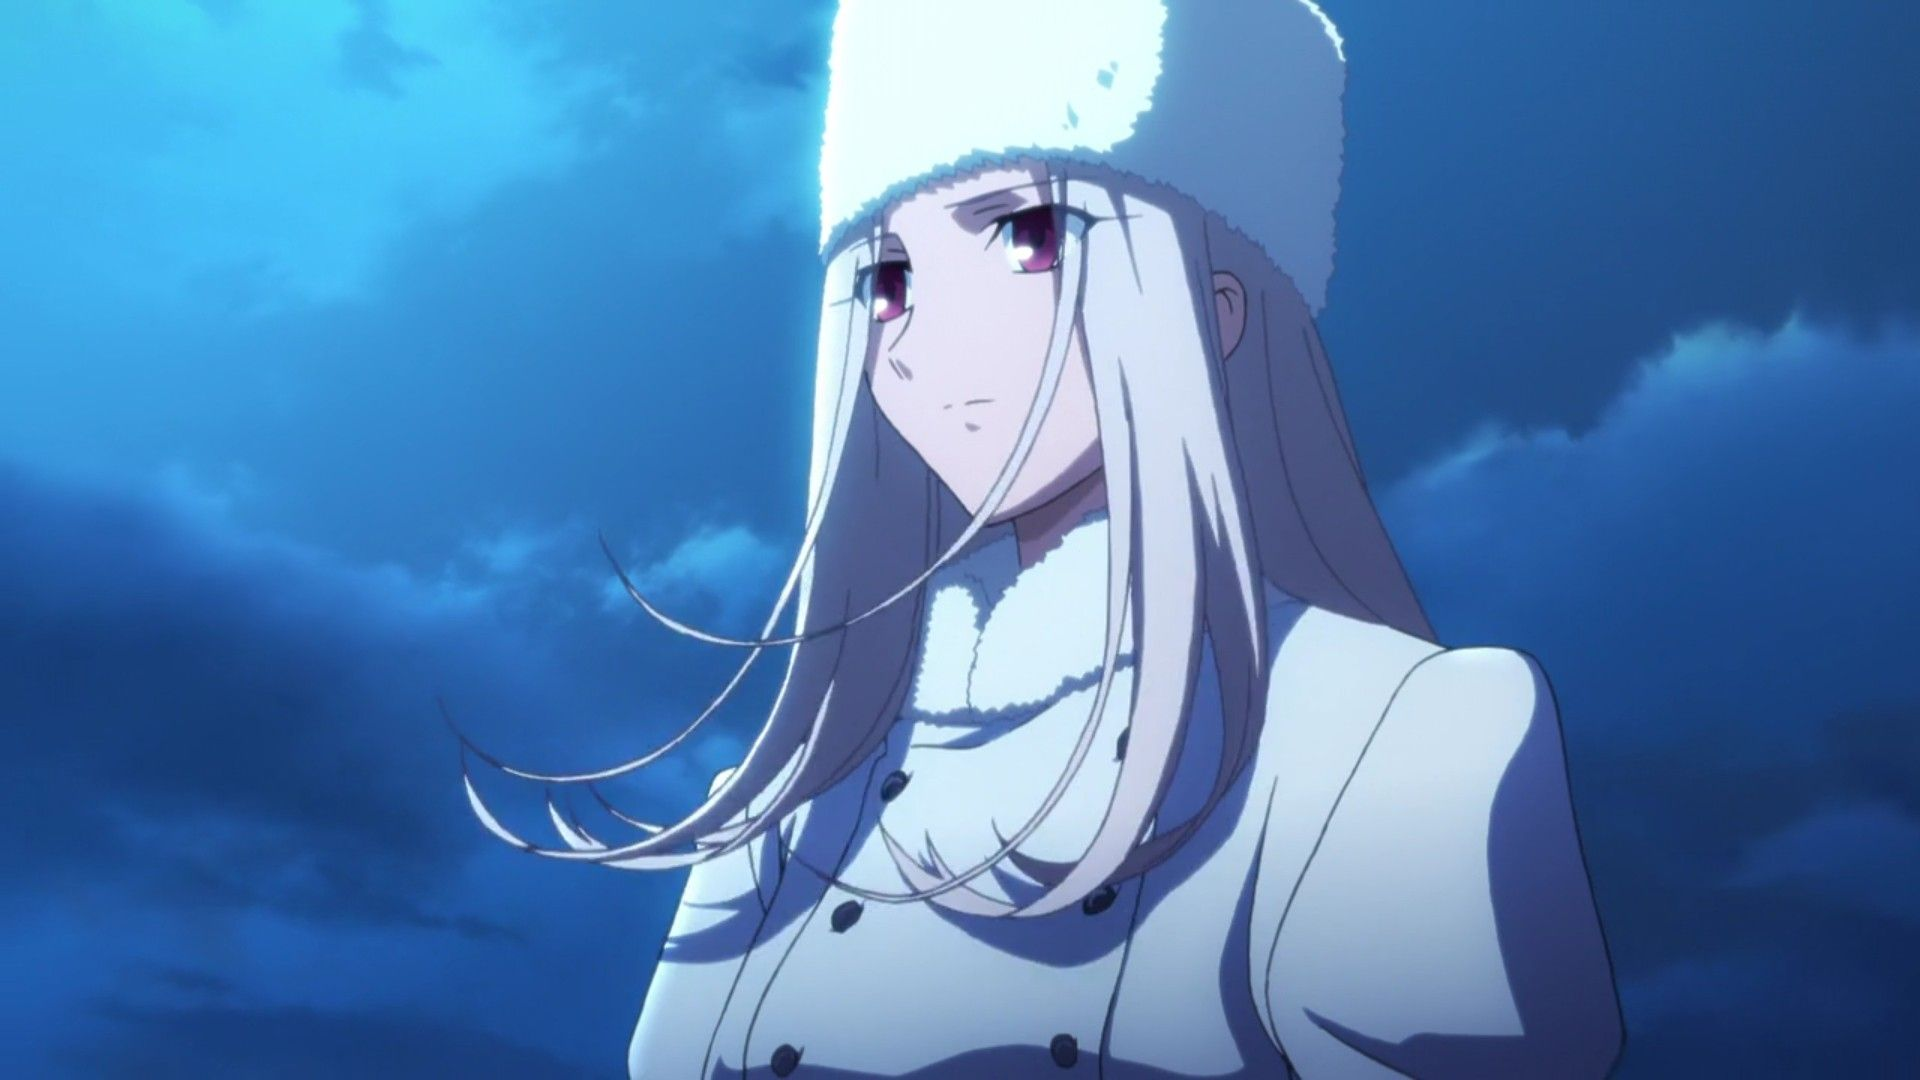 Pin By Shonen Jump Heroes On Fate Series Fate Stay Night Fate Zero Fate